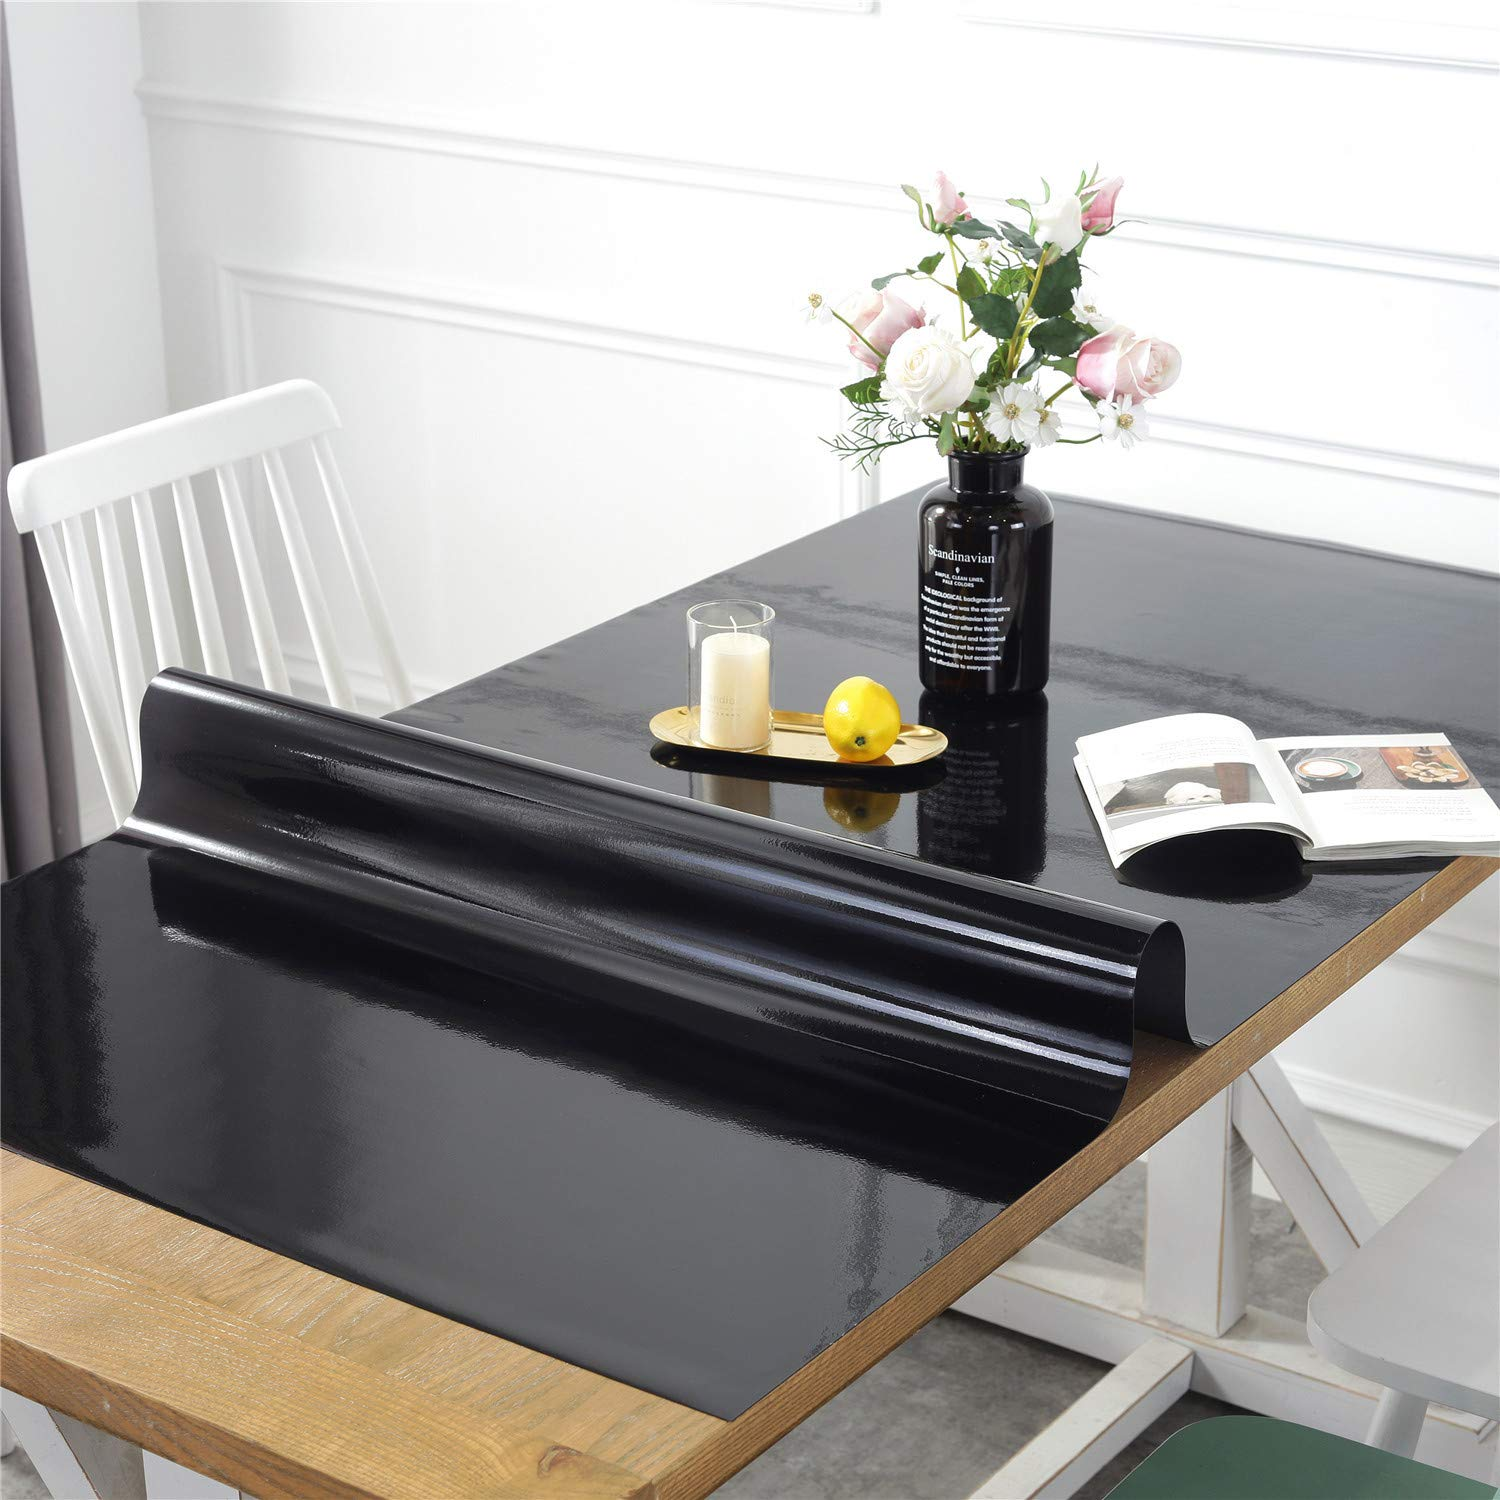 (100cm x 200cm) - OstepDecor Custom Waterproof PVC Protector for Table/Desk Table Pads Table Covers With Multi Size Available, Black 39.5 x 80 Inches (100 x 203cm) 39.5 x 80 Inches  B01HTLTC5G